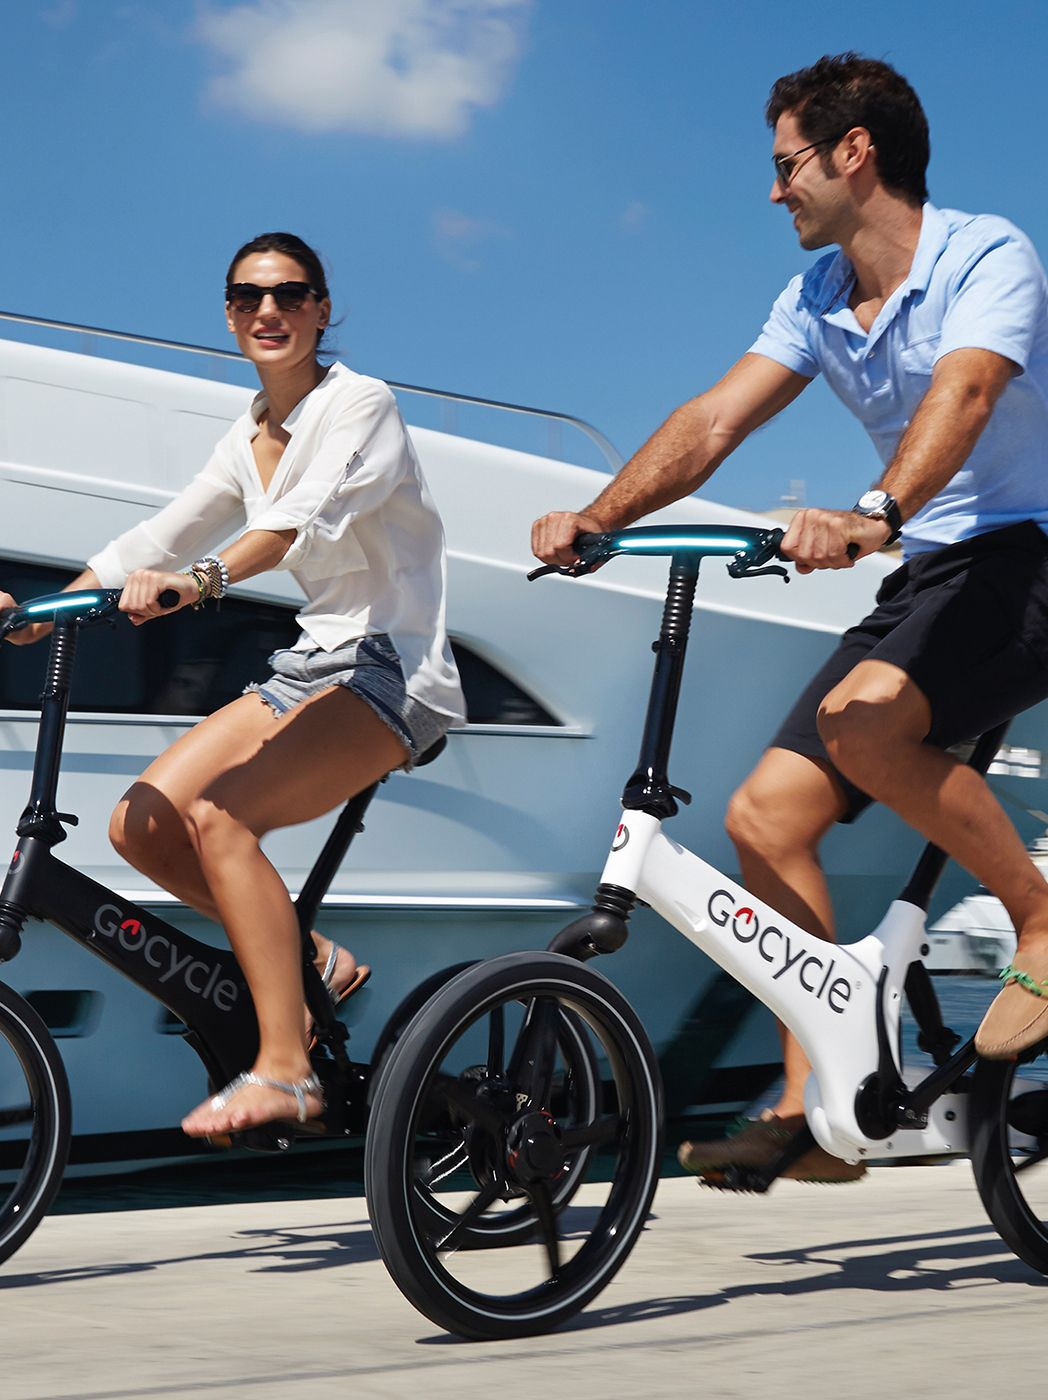 Riding socially is much more fun on an electric bike because the electric motor with level fitness abilities and you get to see more sites and ride further with the electric assistance.